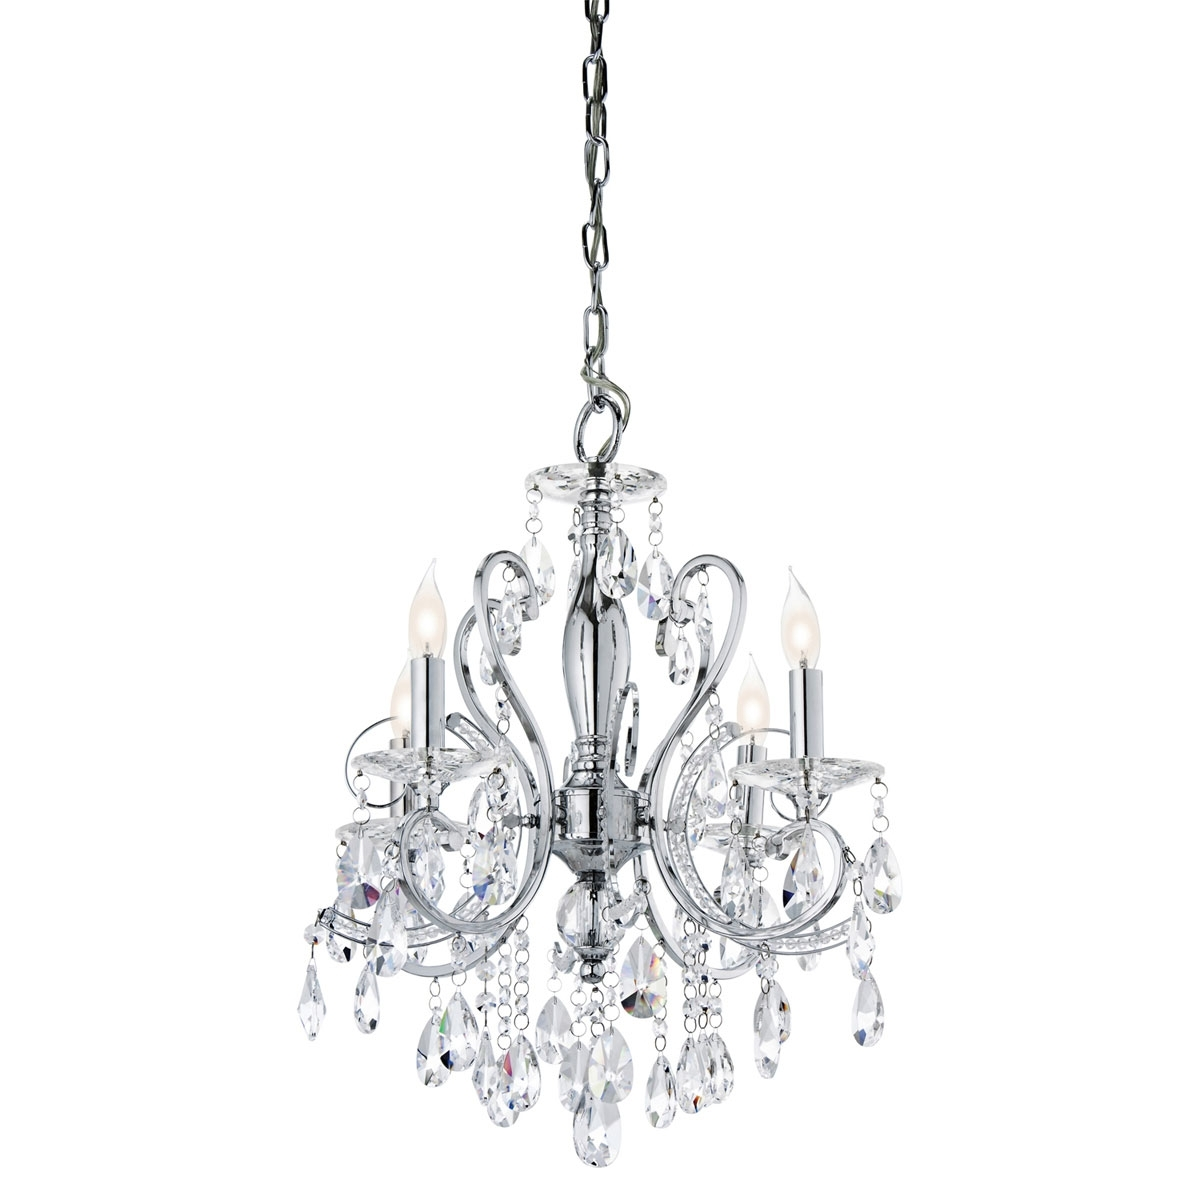 Popular Small Chandeliers Regarding Ultimate Mini Crystal Chandeliers About Modern Home Interior Design (View 9 of 15)